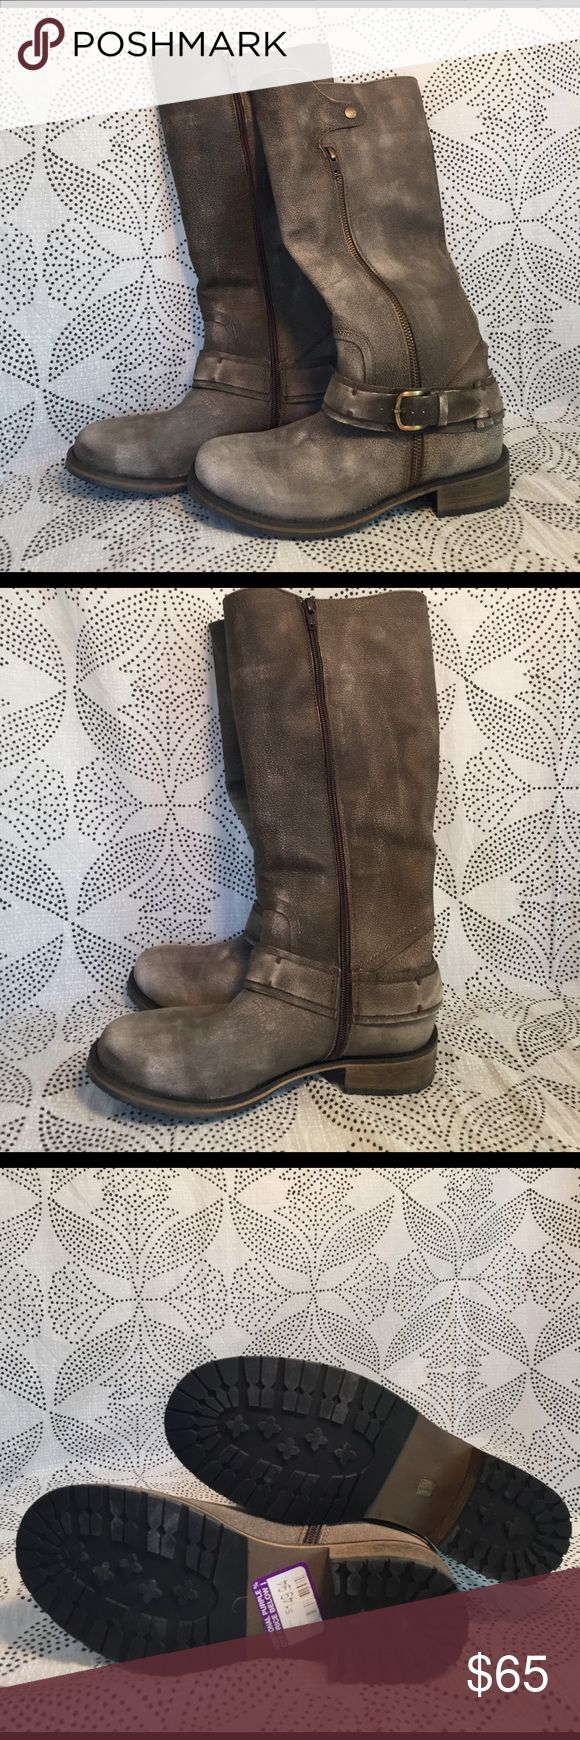 Brown grey leather boots New! Leather grey/brown knee high zip up . Cute with jeans or a dress comfortable rubber sole for all weather. matisse Shoes